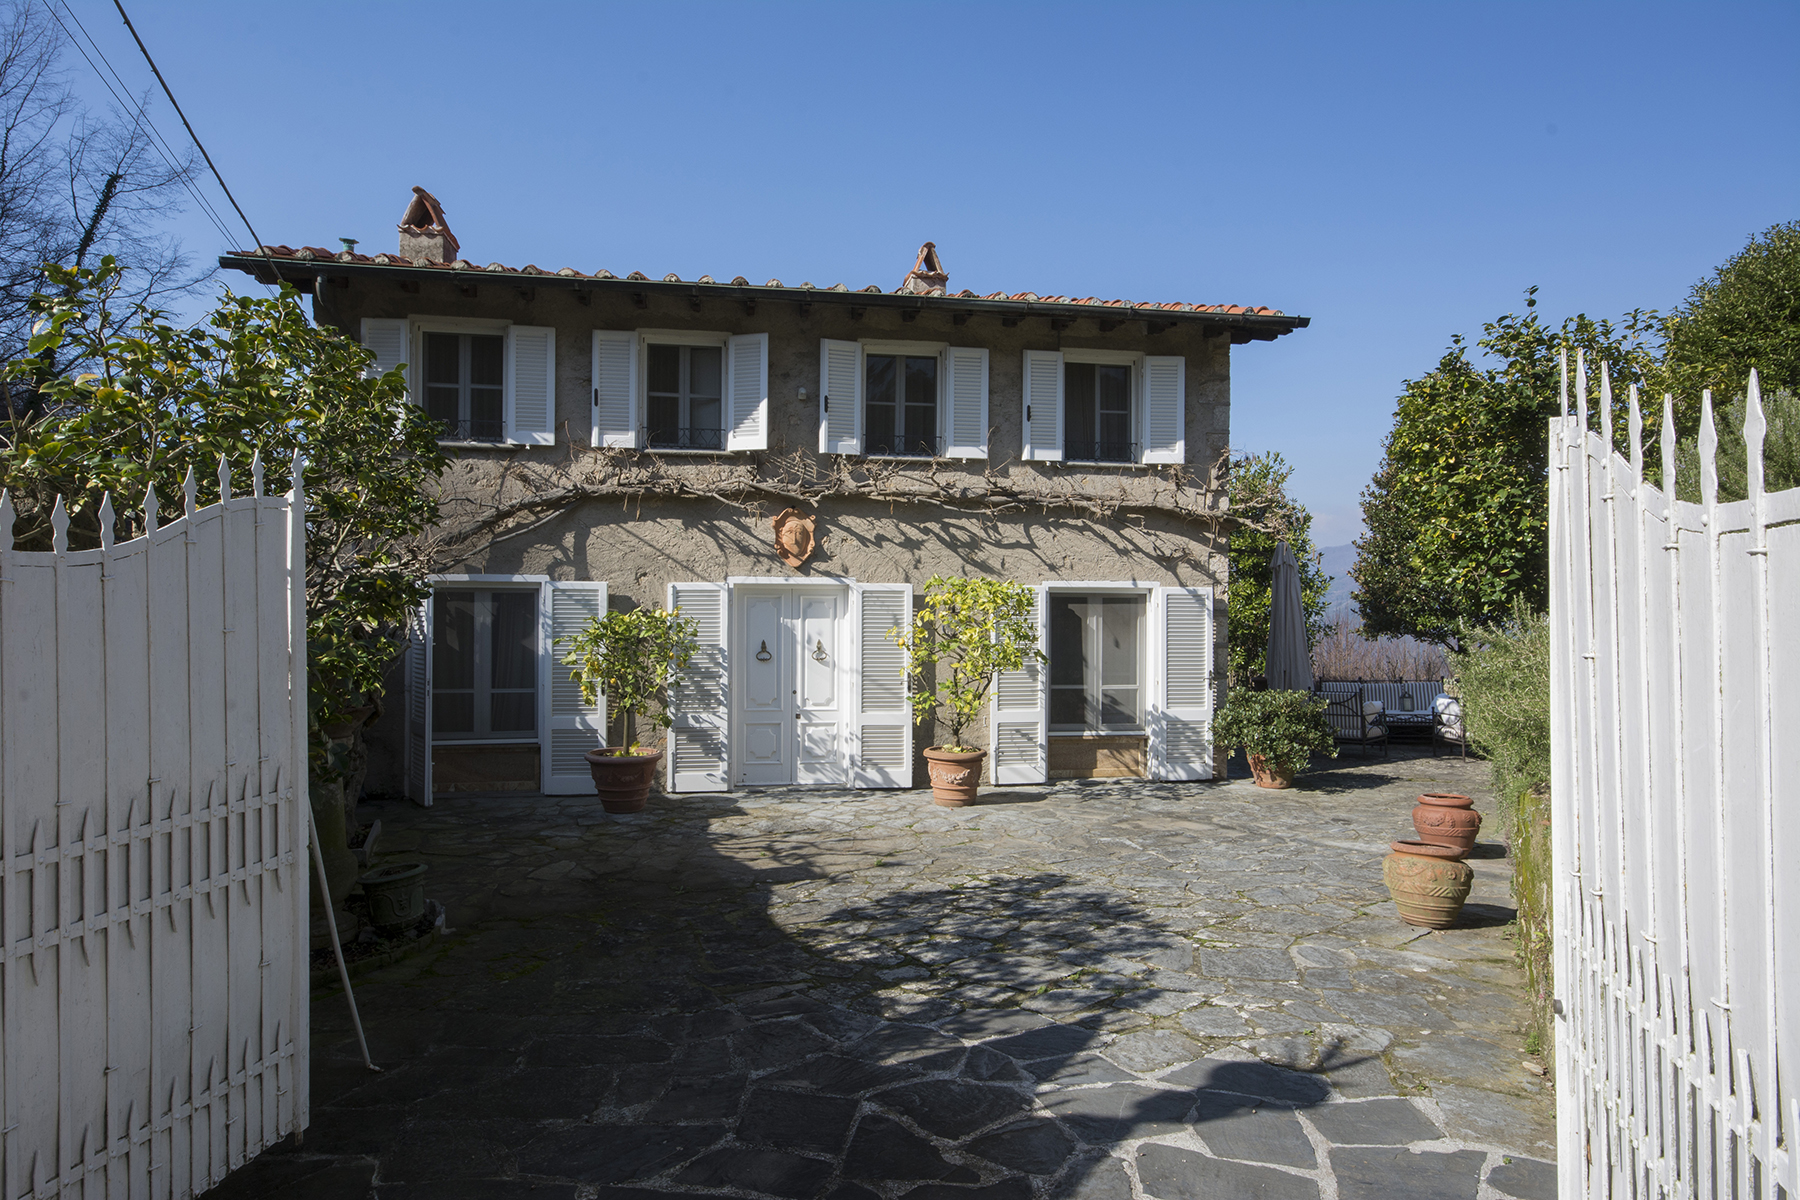 Single Family Home for Sale at Lovely villa with swimming pool in Pietrasanta Via della Fornace Other Lucca, Lucca 55045 Italy